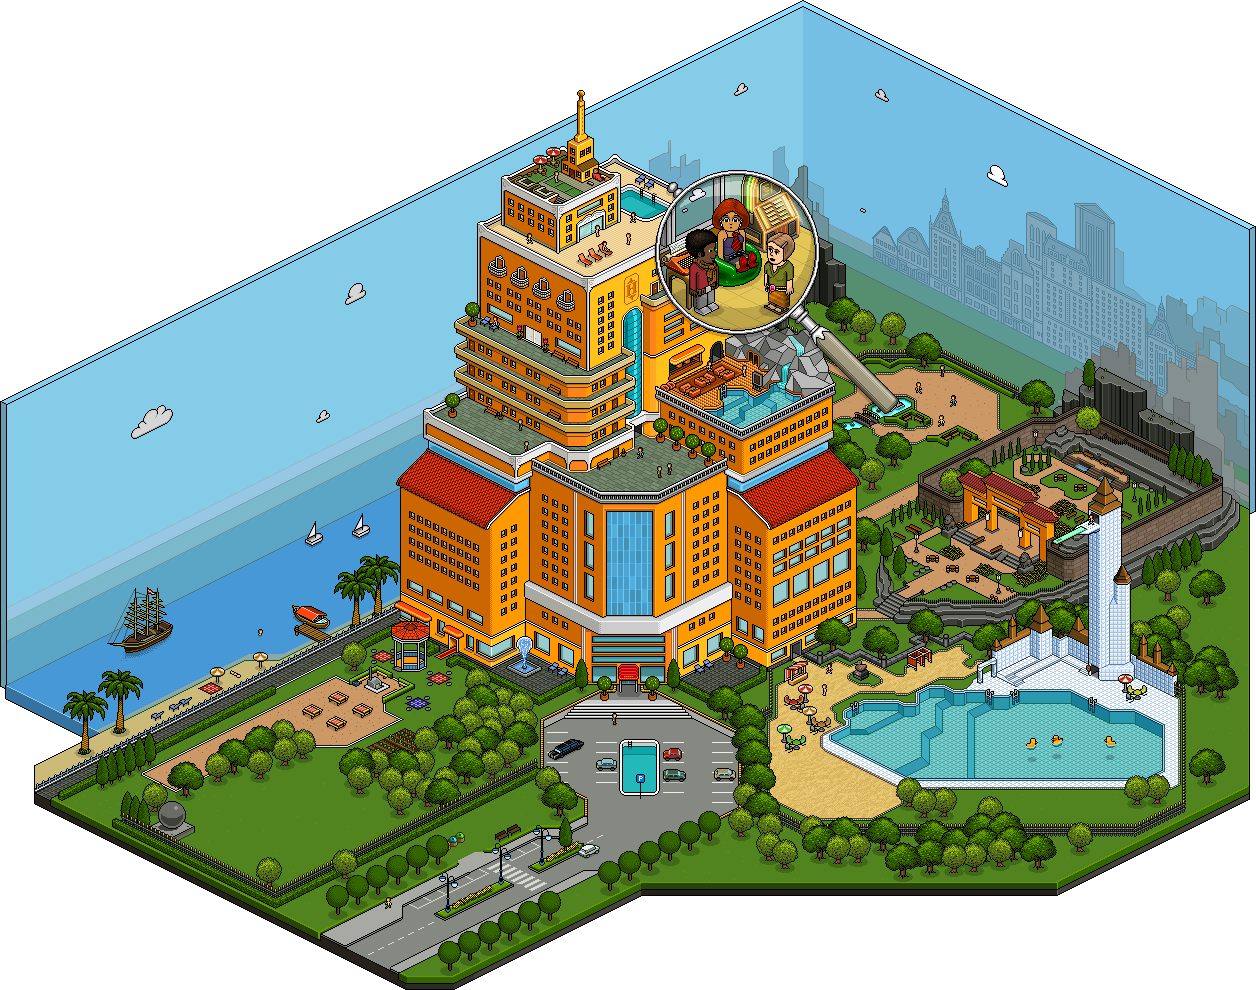 Habbo's woes continue with threat of regulation and loss of retailer support